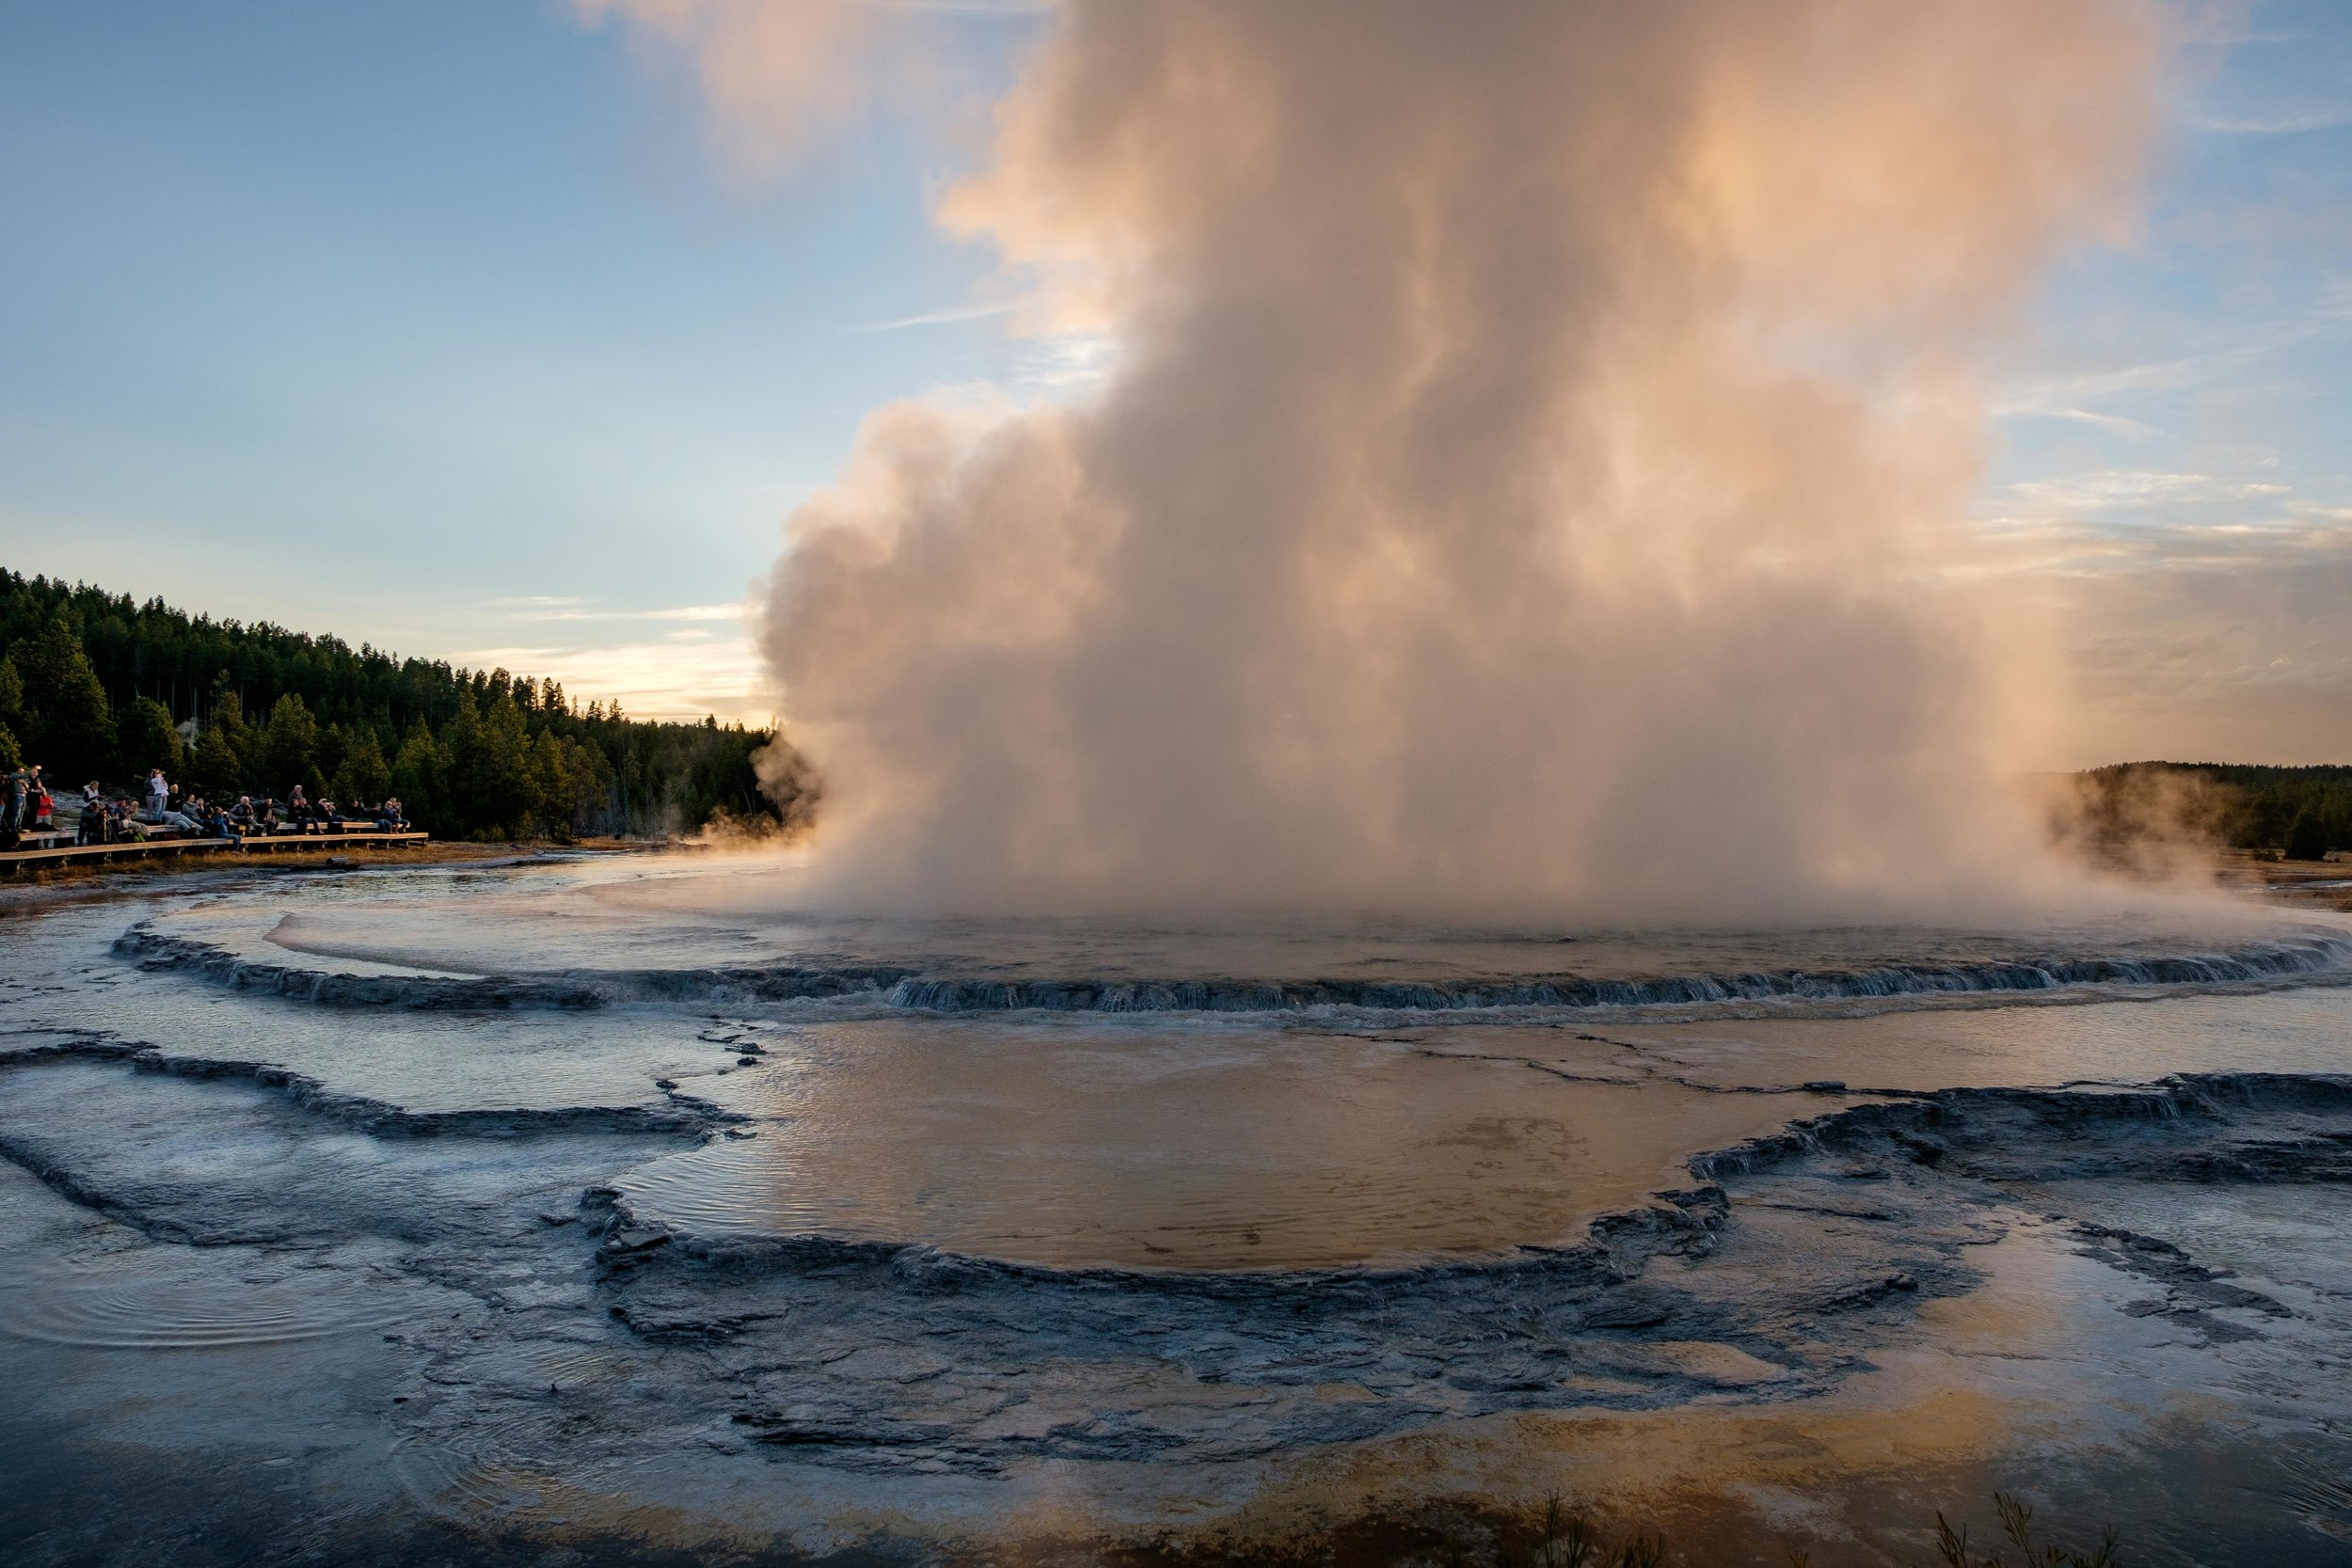 Located in the Firehole Lake area of Lower Geyser Basin, the Great Fountain Geyser is a predictable (and beautiful!) geyser.